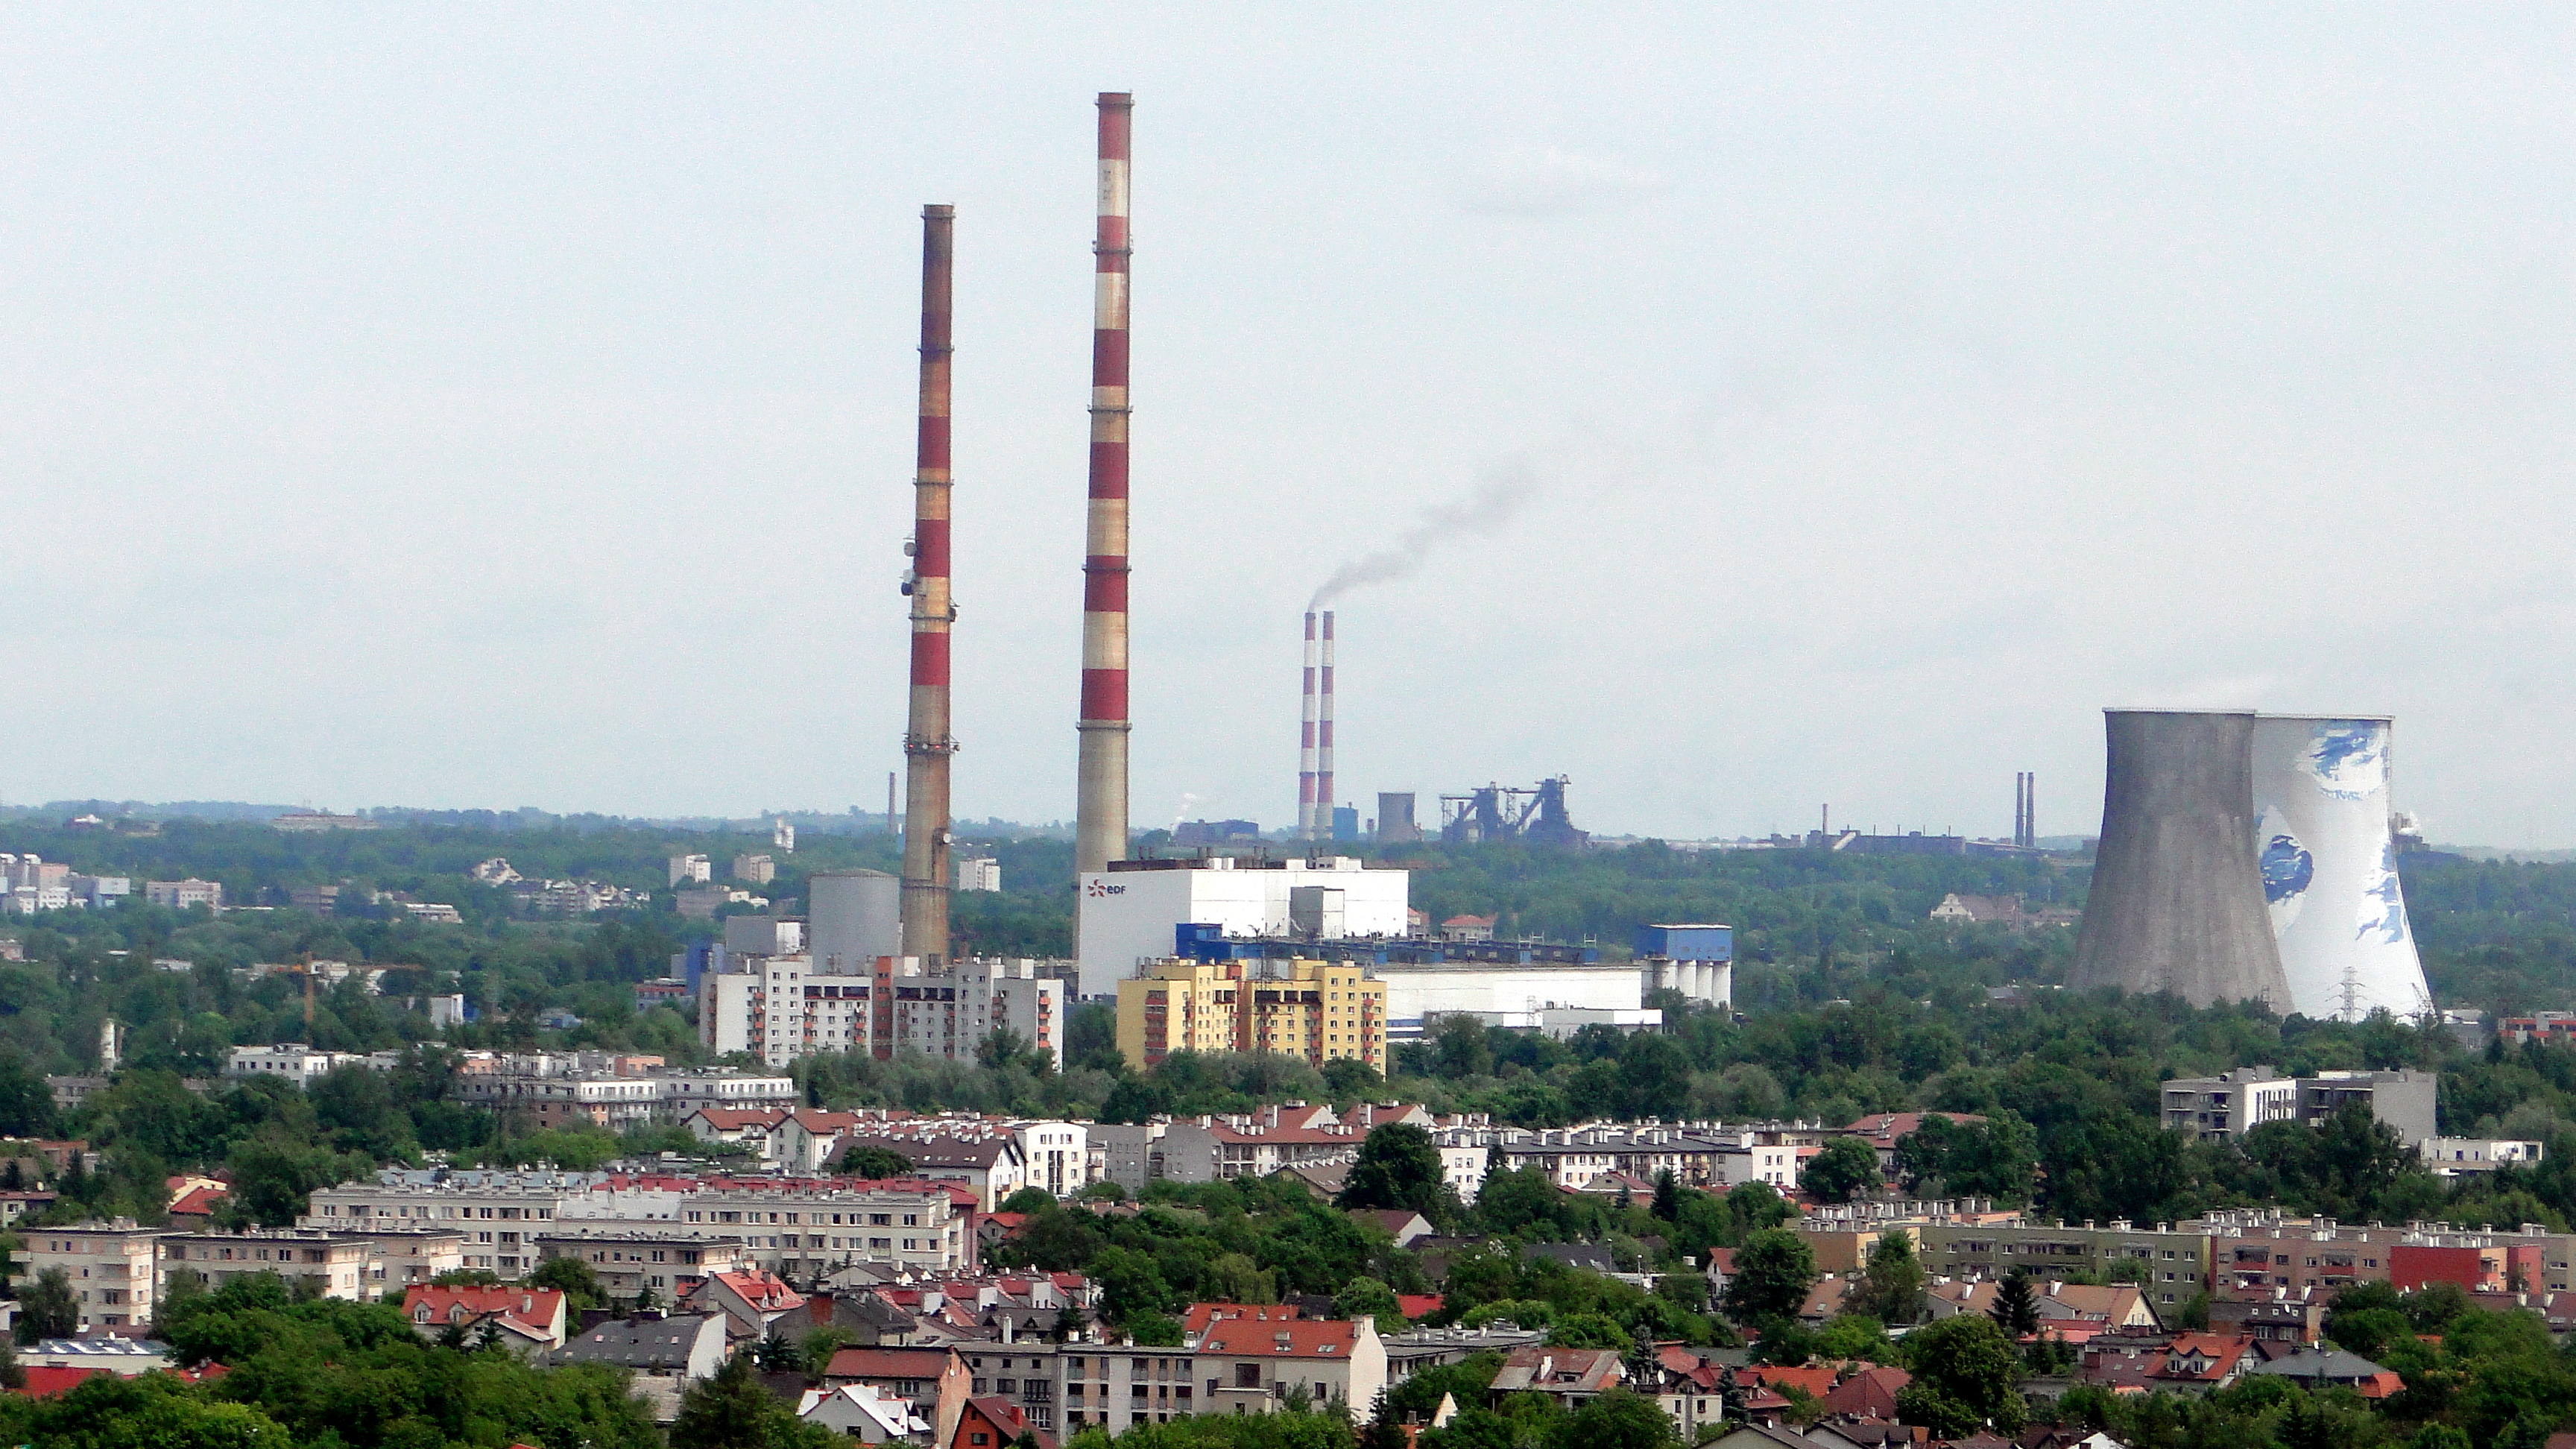 File Łęg Cogeneration and power plant from Kopiec Krakusa JPG